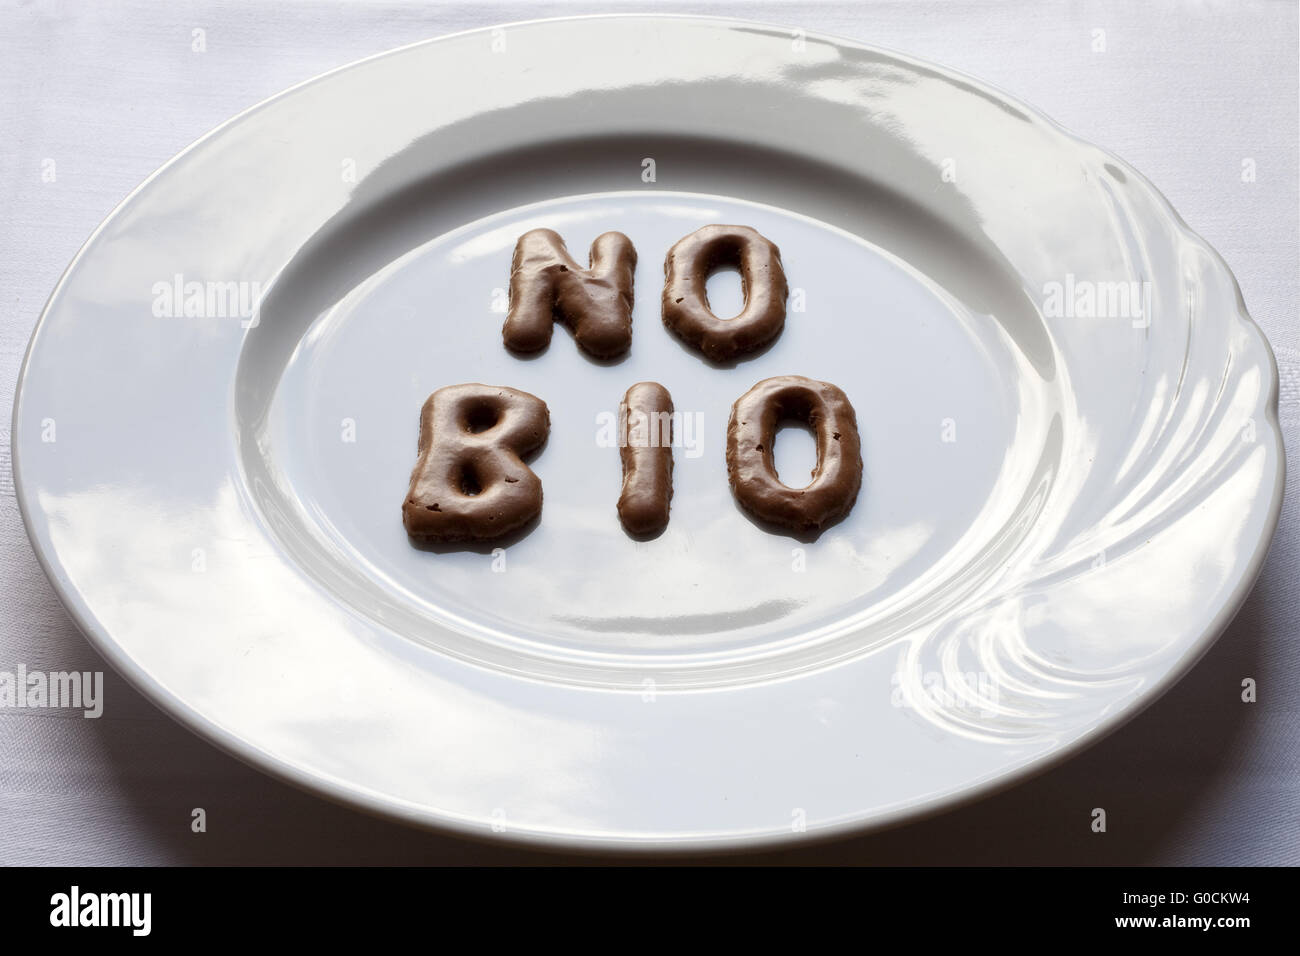 Letters forming the word no Bio on a plate - Stock Image